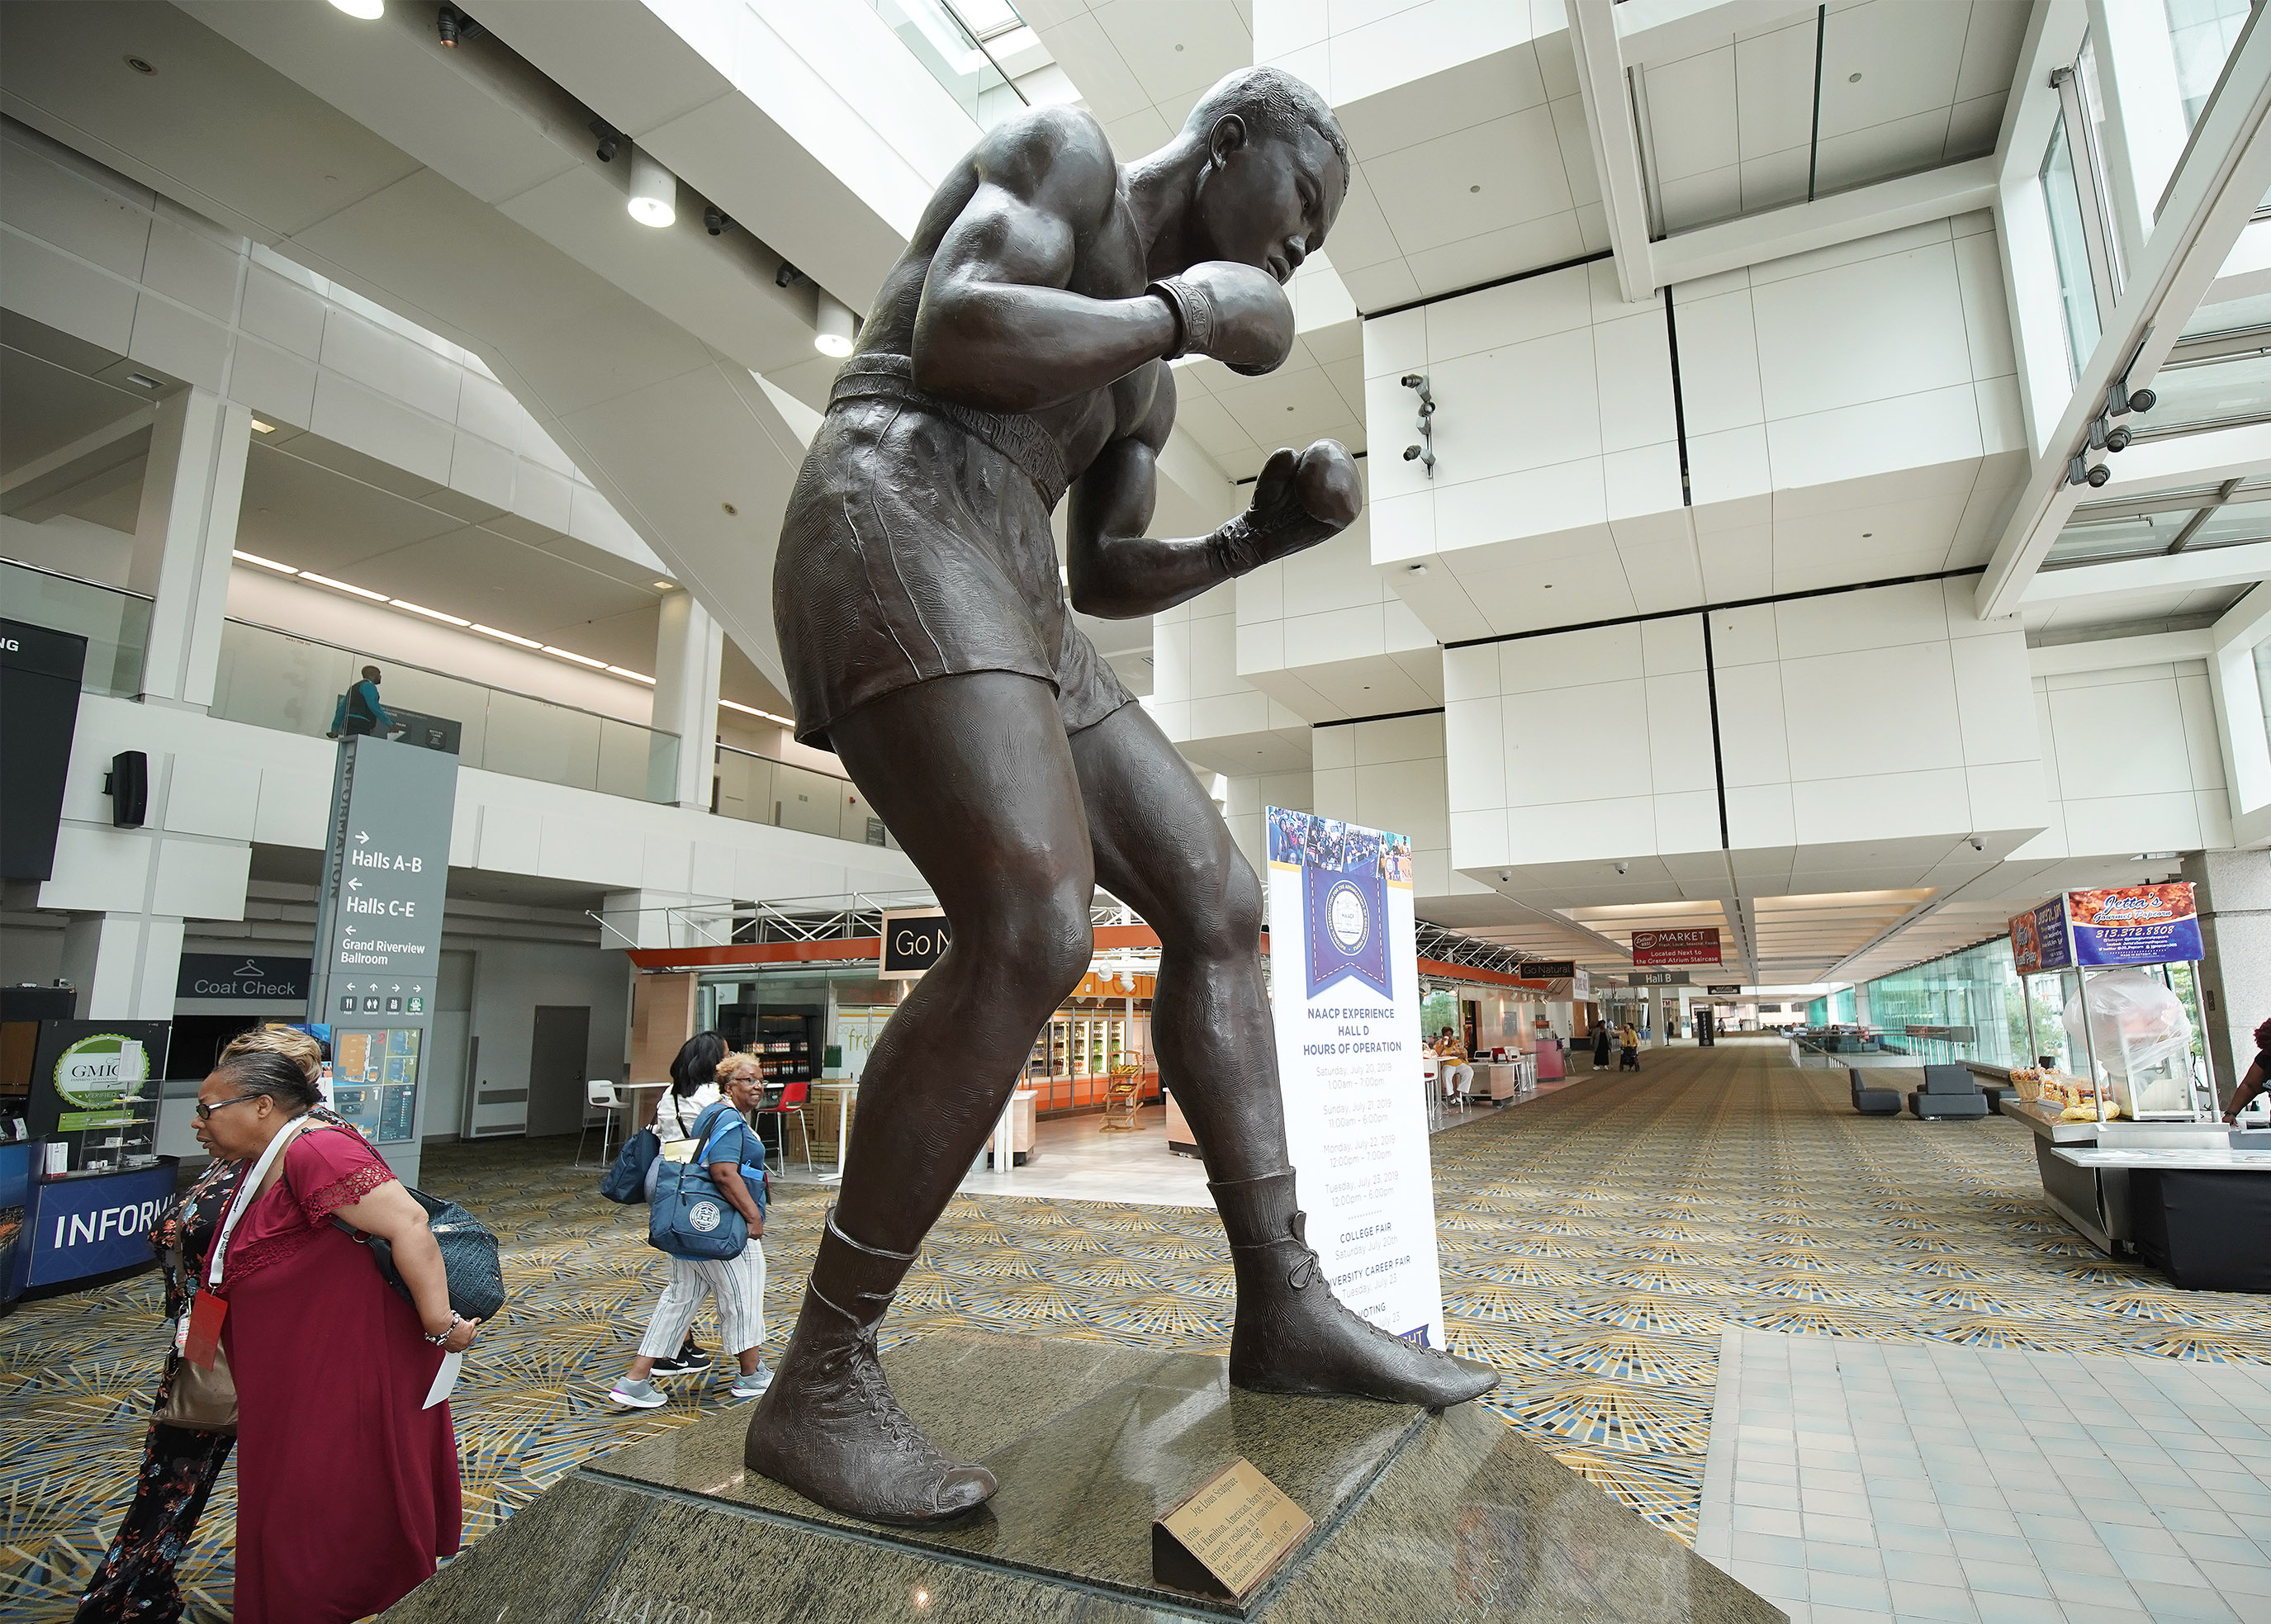 A statue of boxer Joe Louis is displayed at the COBO convention center in Detroit on Sunday, July 21, 2019. The National Association for the Advancement of Colored People is holding their convention at the center.